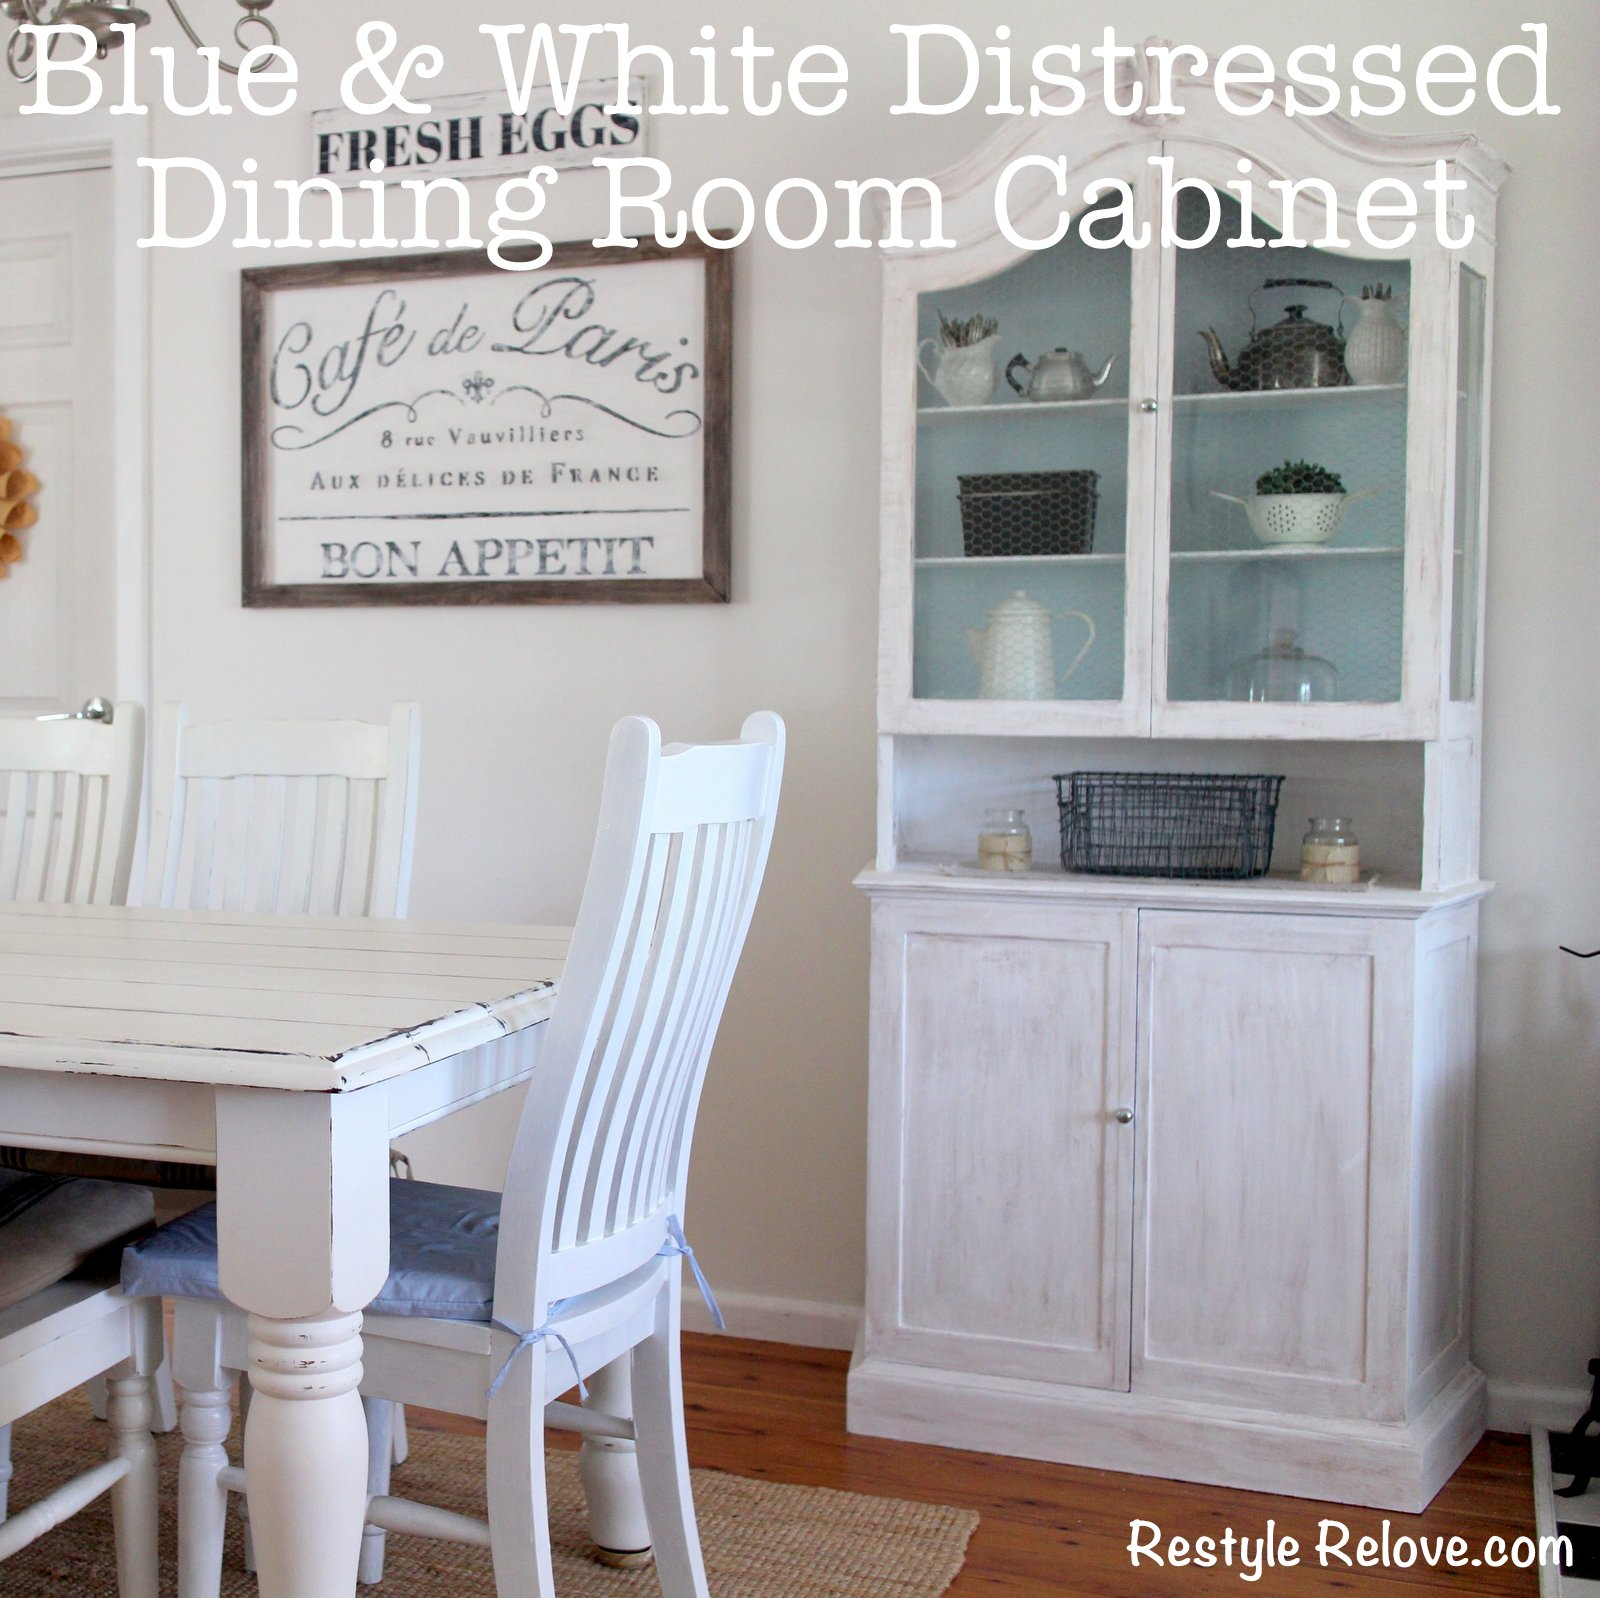 Blue and White Distressed Dining Room Cabinet